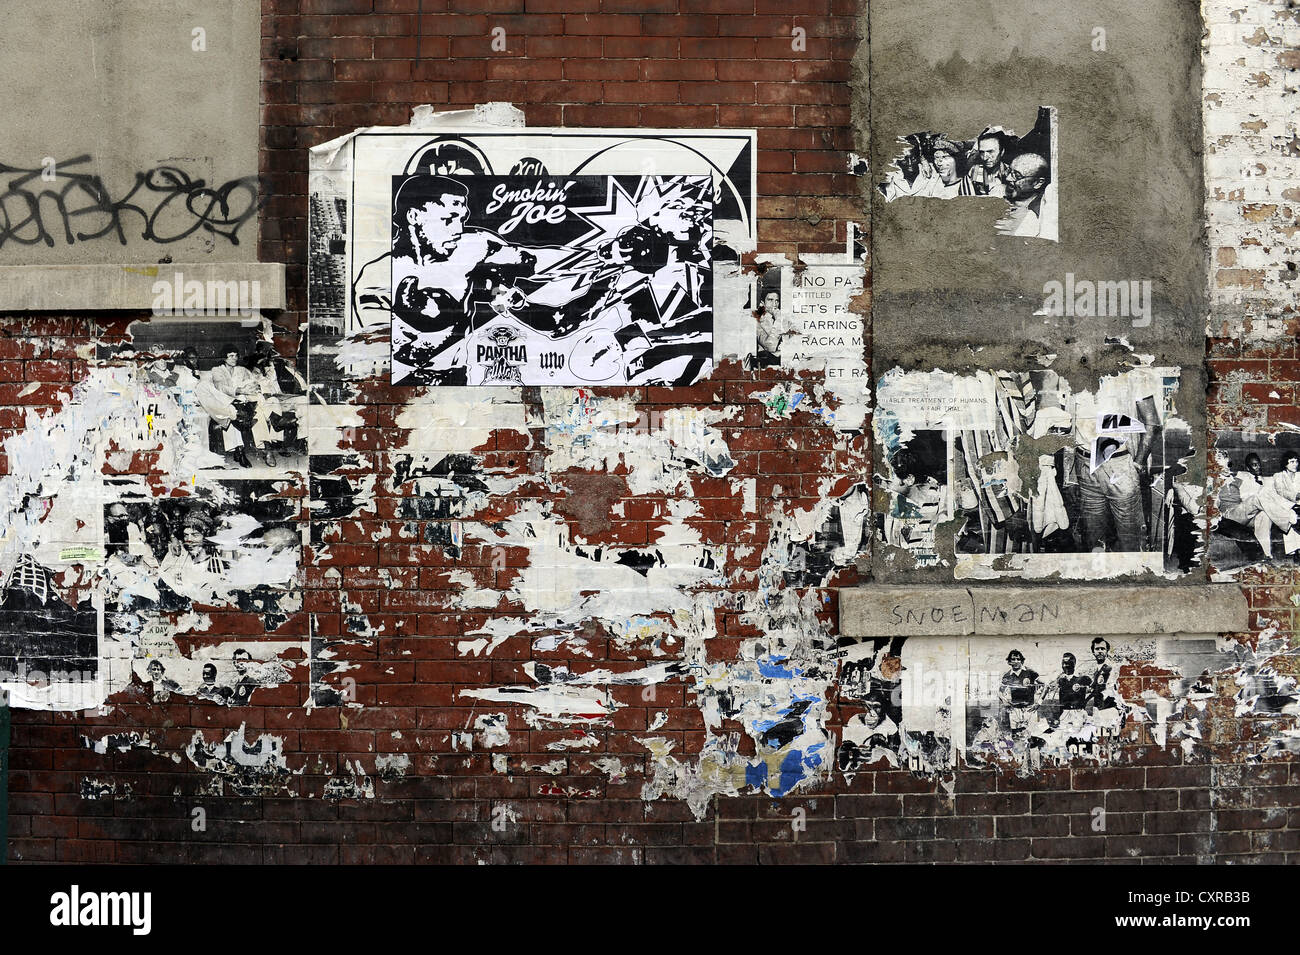 Wall with billboards in Harlem, Manhattan, New York City, New York, USA, North America - Stock Image